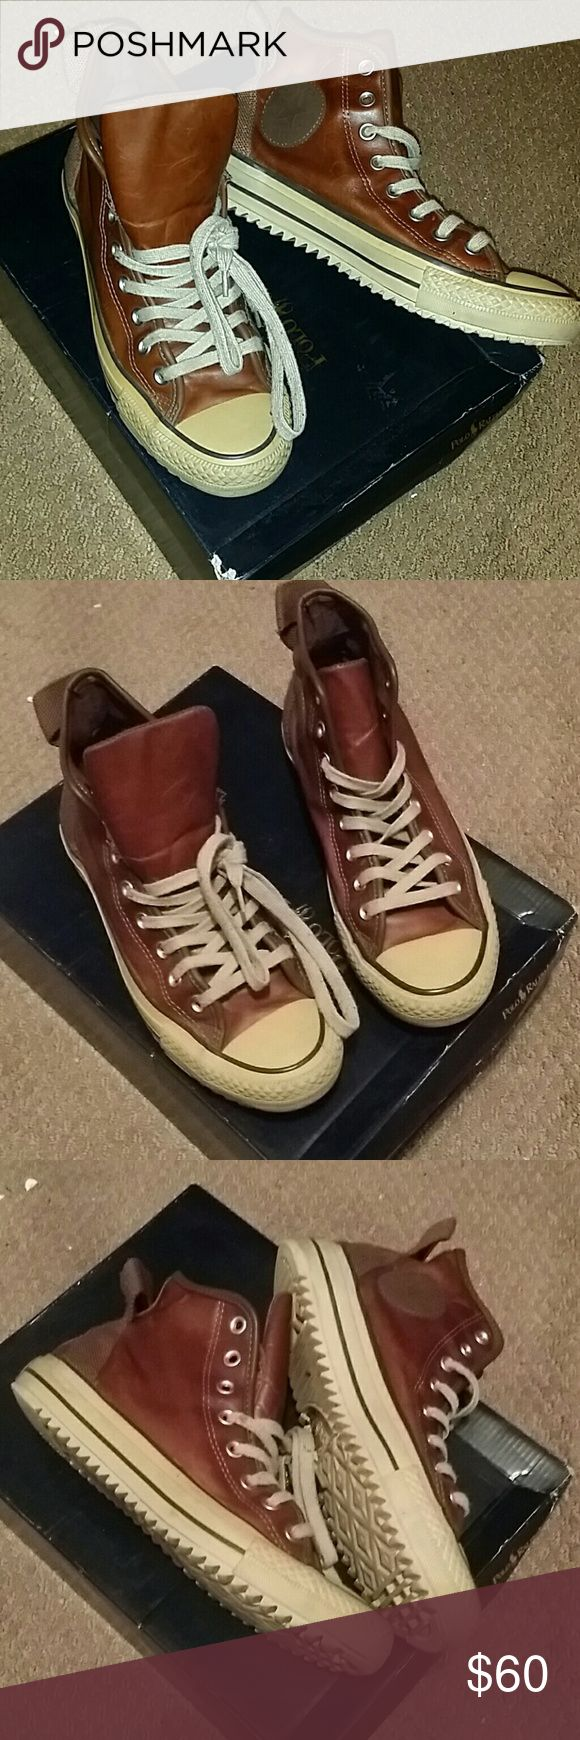 Converse Shoes Brown, Leather Converse Shoes Sneakers